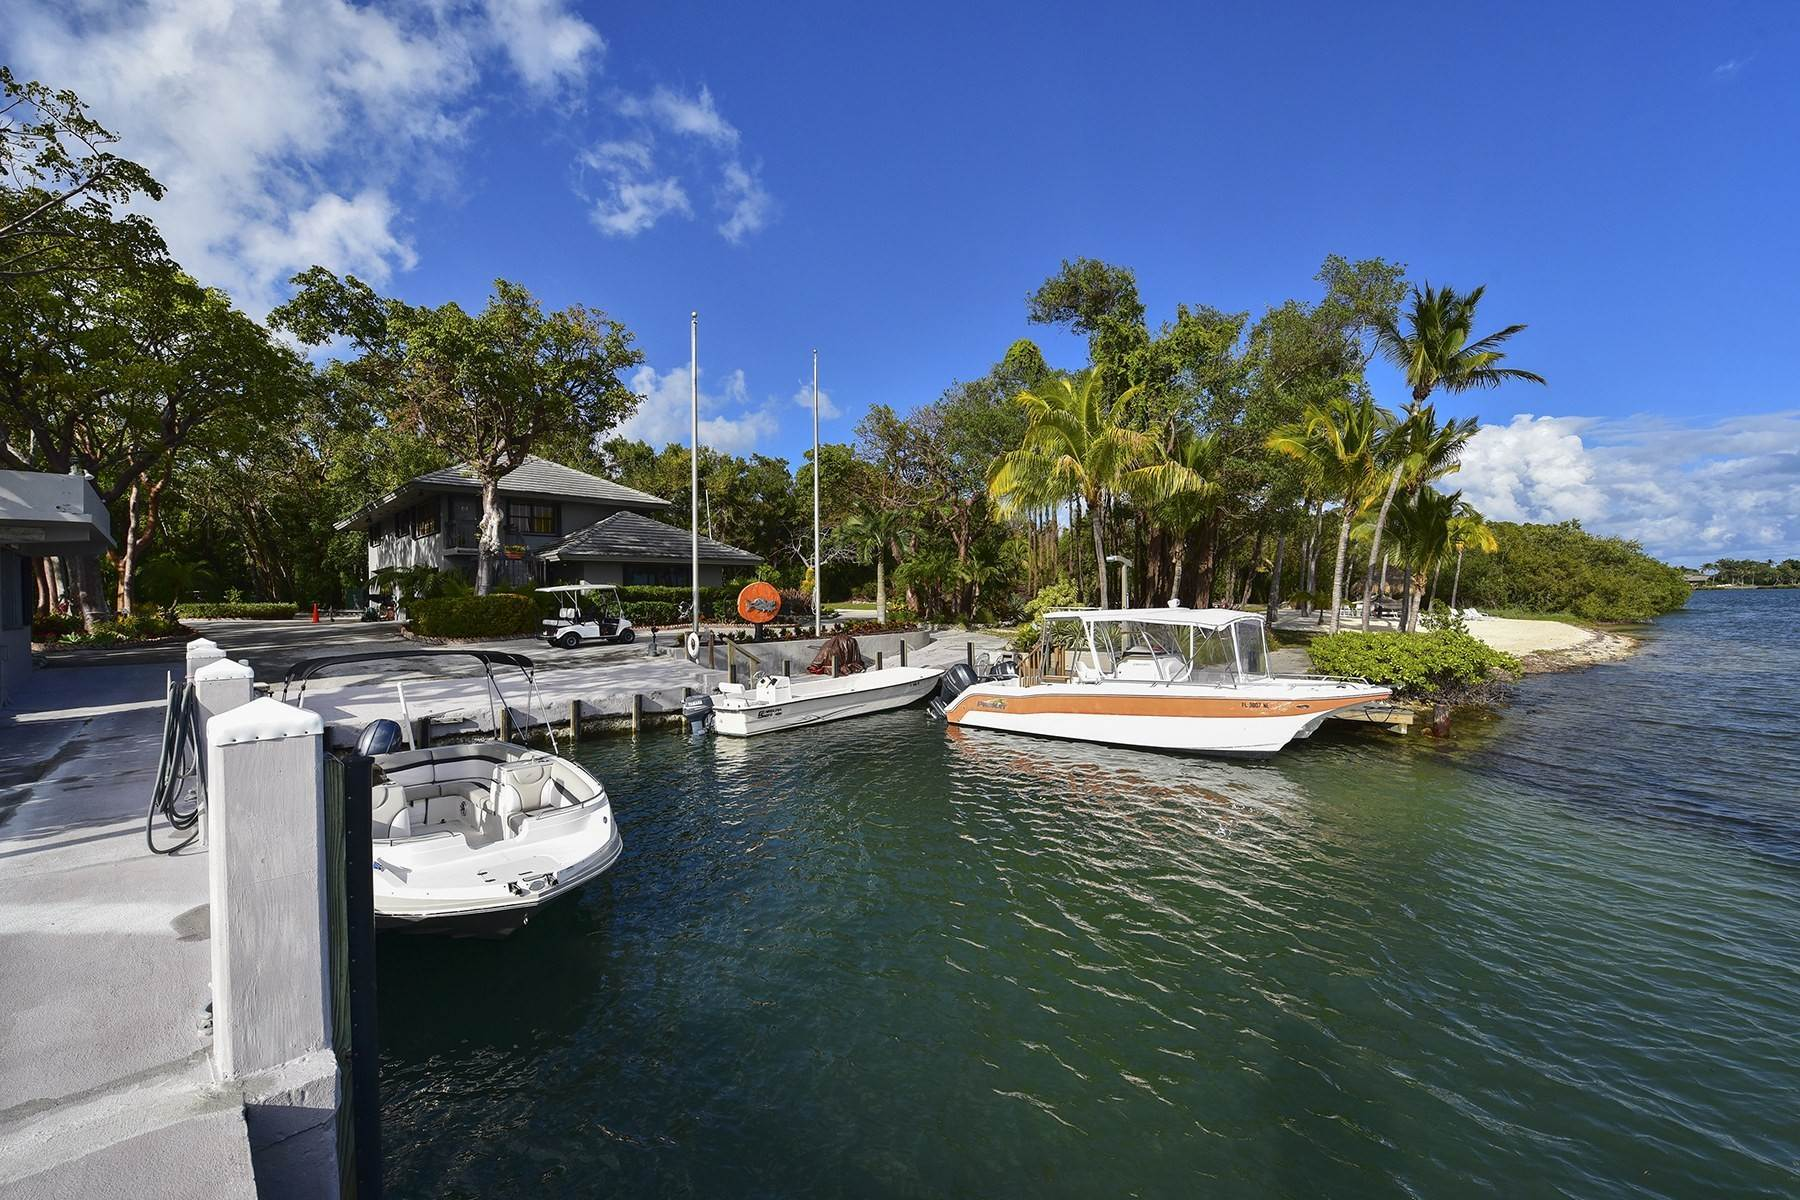 8. Property for Sale at Pumpkin Key - Private Island, Key Largo, FL Key Largo, Florida 33037 United States